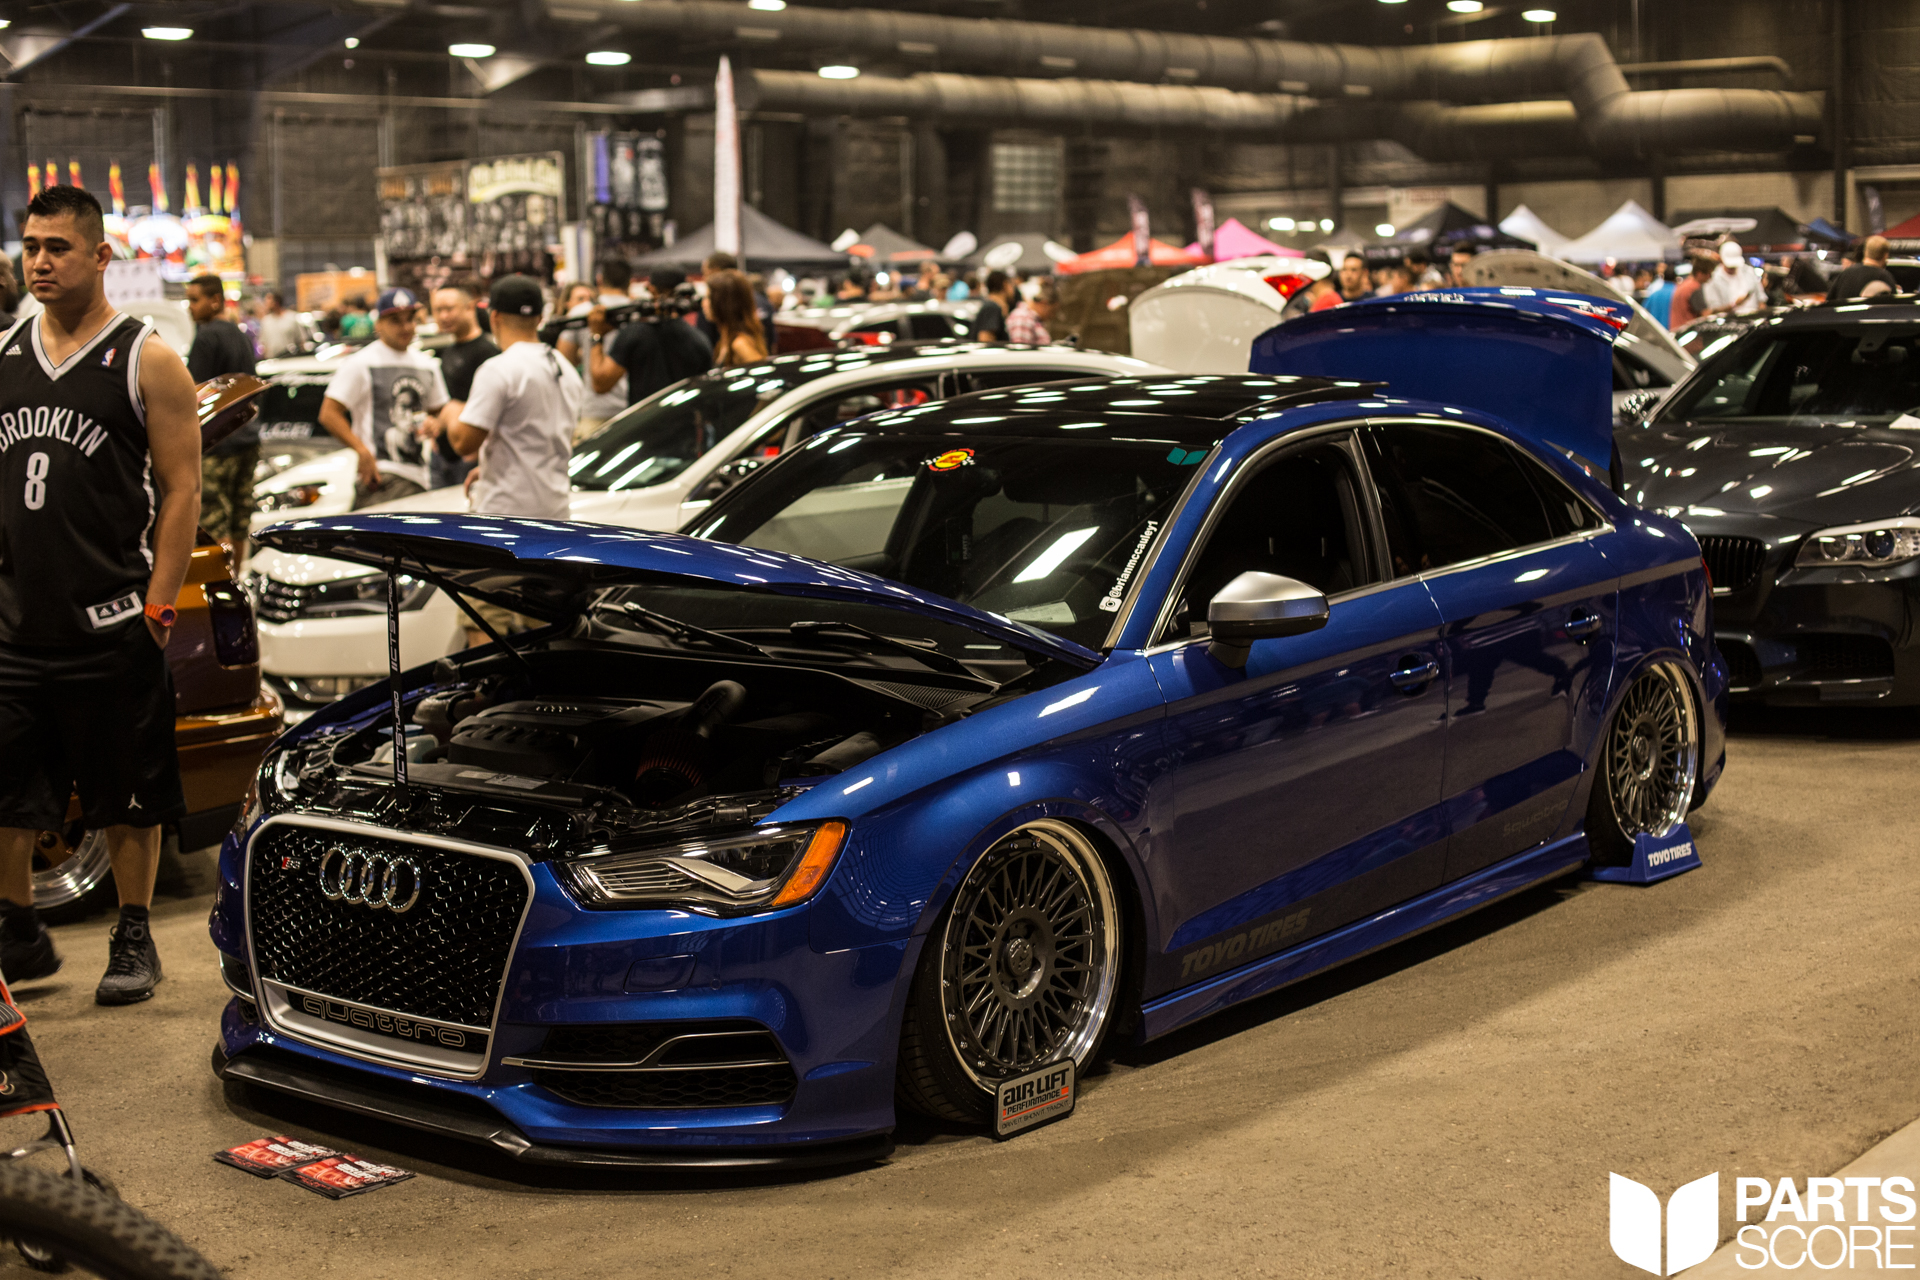 audi s3, air lift performance ,giac tuning ,toyotires ,hgmotorsportofficial ,emmanueledesign ,blackforestindustries ,ctsturbo ,stancenation ,audi ,audigramm fifteen52, 52family, audi, audis3, audia3, 8v, 8l, 8p, 8vs3, 8va3, 8la3, 8ls3, 8pa3, 8ps3, boost, turbo, turbocharged, projects3, projecta3, fourtitude, airride, slammed, bagged, airlift, v2, airlift v2, airlift 3h, airlift 3p, toyo, r888, billy boat, billy boat exhaust, ttrs, ttrs brakes, fifteen52 touren sc, 034 motorsports, black forest industries, giac, g.i.a.c., giac tune, giac flash, giac performance, flashtune, p3cars, boost gauge, partsscore, parts score, scottsdale, arizona, phoenix, tempe, az, cars of arizona,